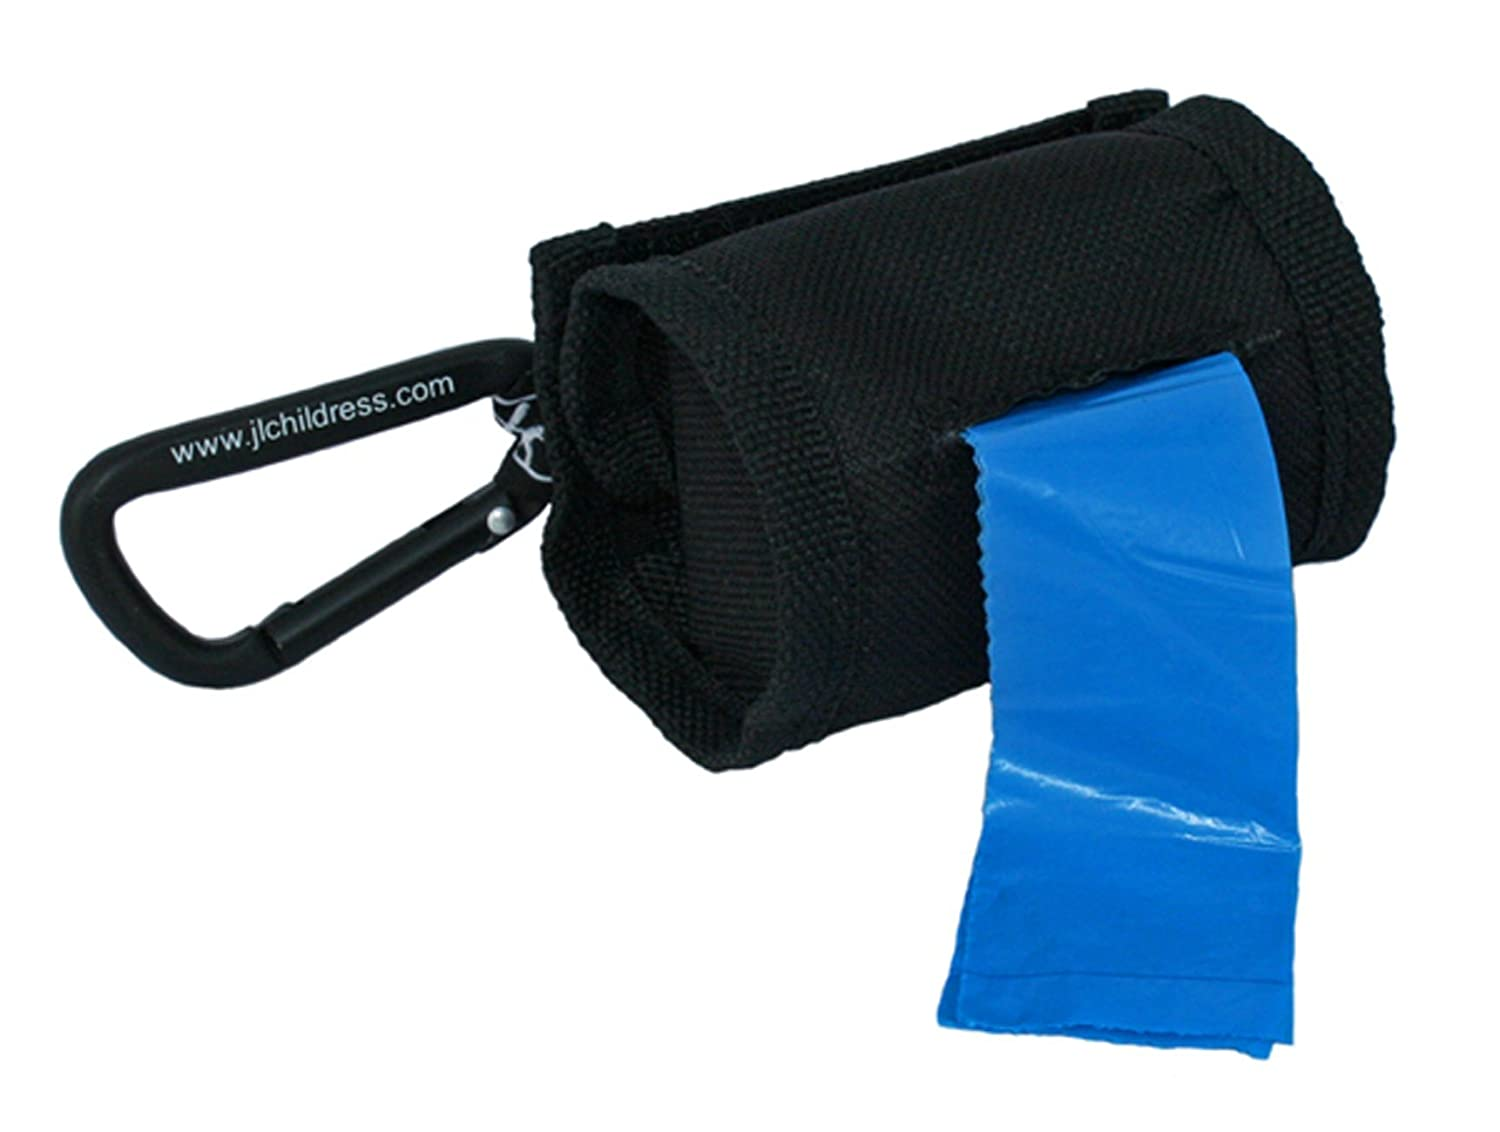 J. L. Childress Bag 'N Bags Duffle Dispenser with 30 Disposable Bags, Black, 1 Pack 1120BLK